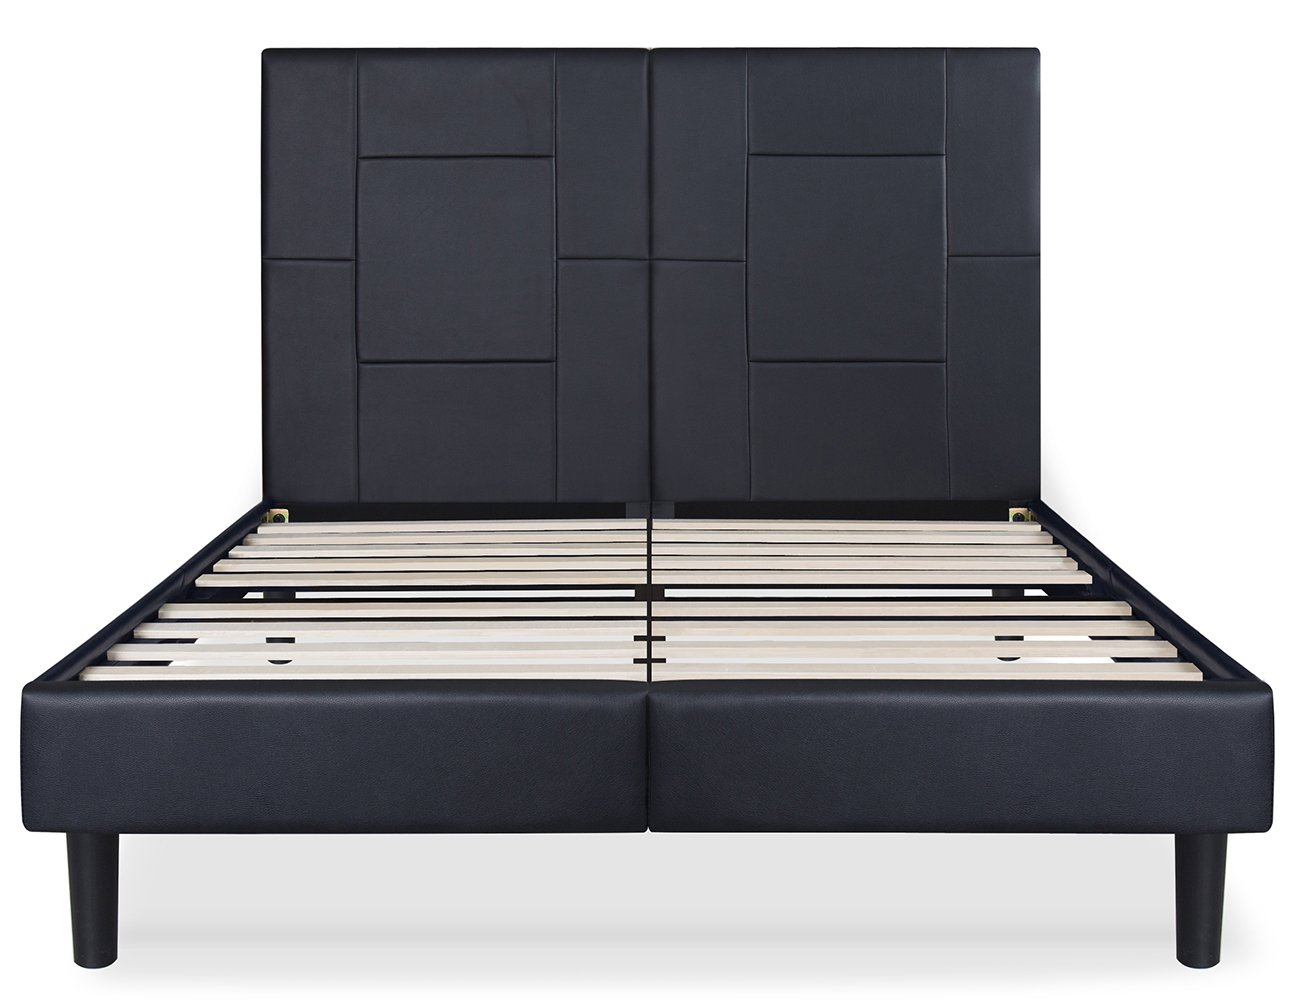 amazoncom sleeplace 14 inch dura metal faux leather wood folding full platform bed frame black pb6000 full kitchen u0026 dining